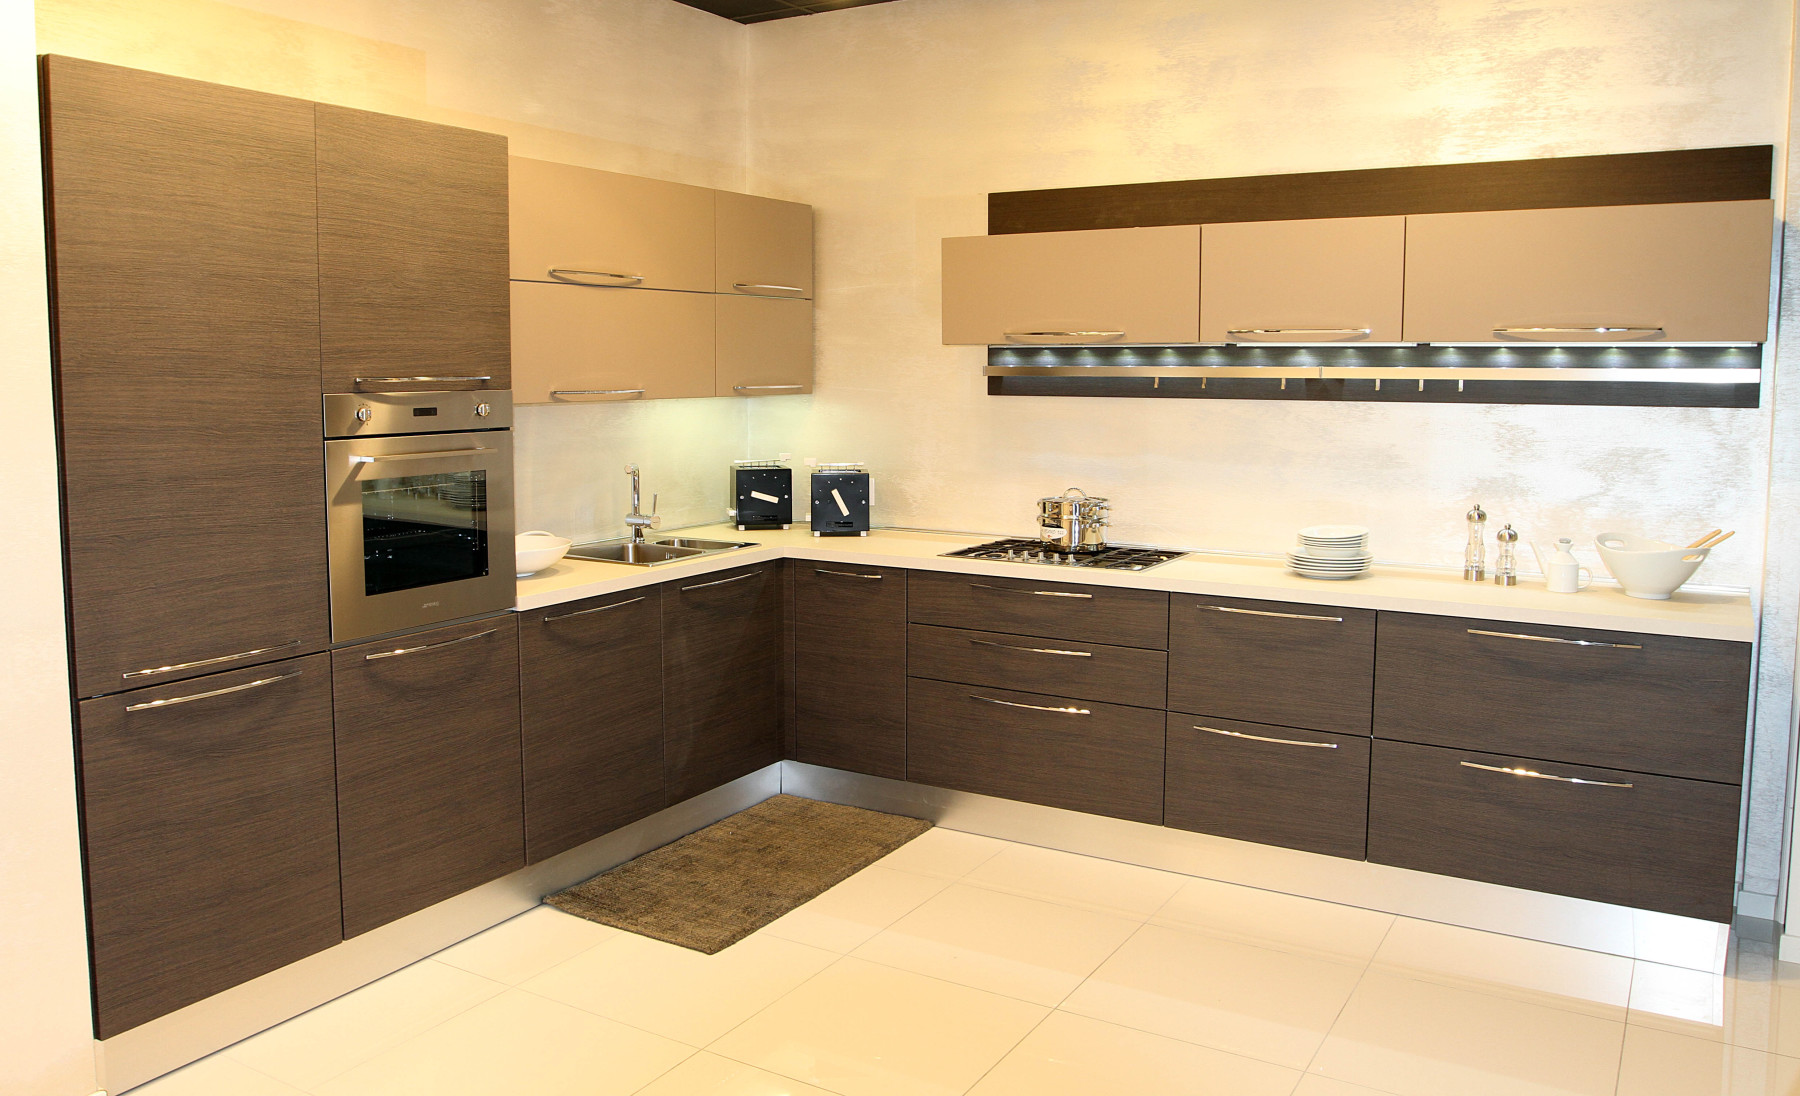 Start Time Go Veneta Cucine Cucina Moderna Pictures To Pin On  #AD7C1E 1800 1096 Cucine Veneta Con Isola